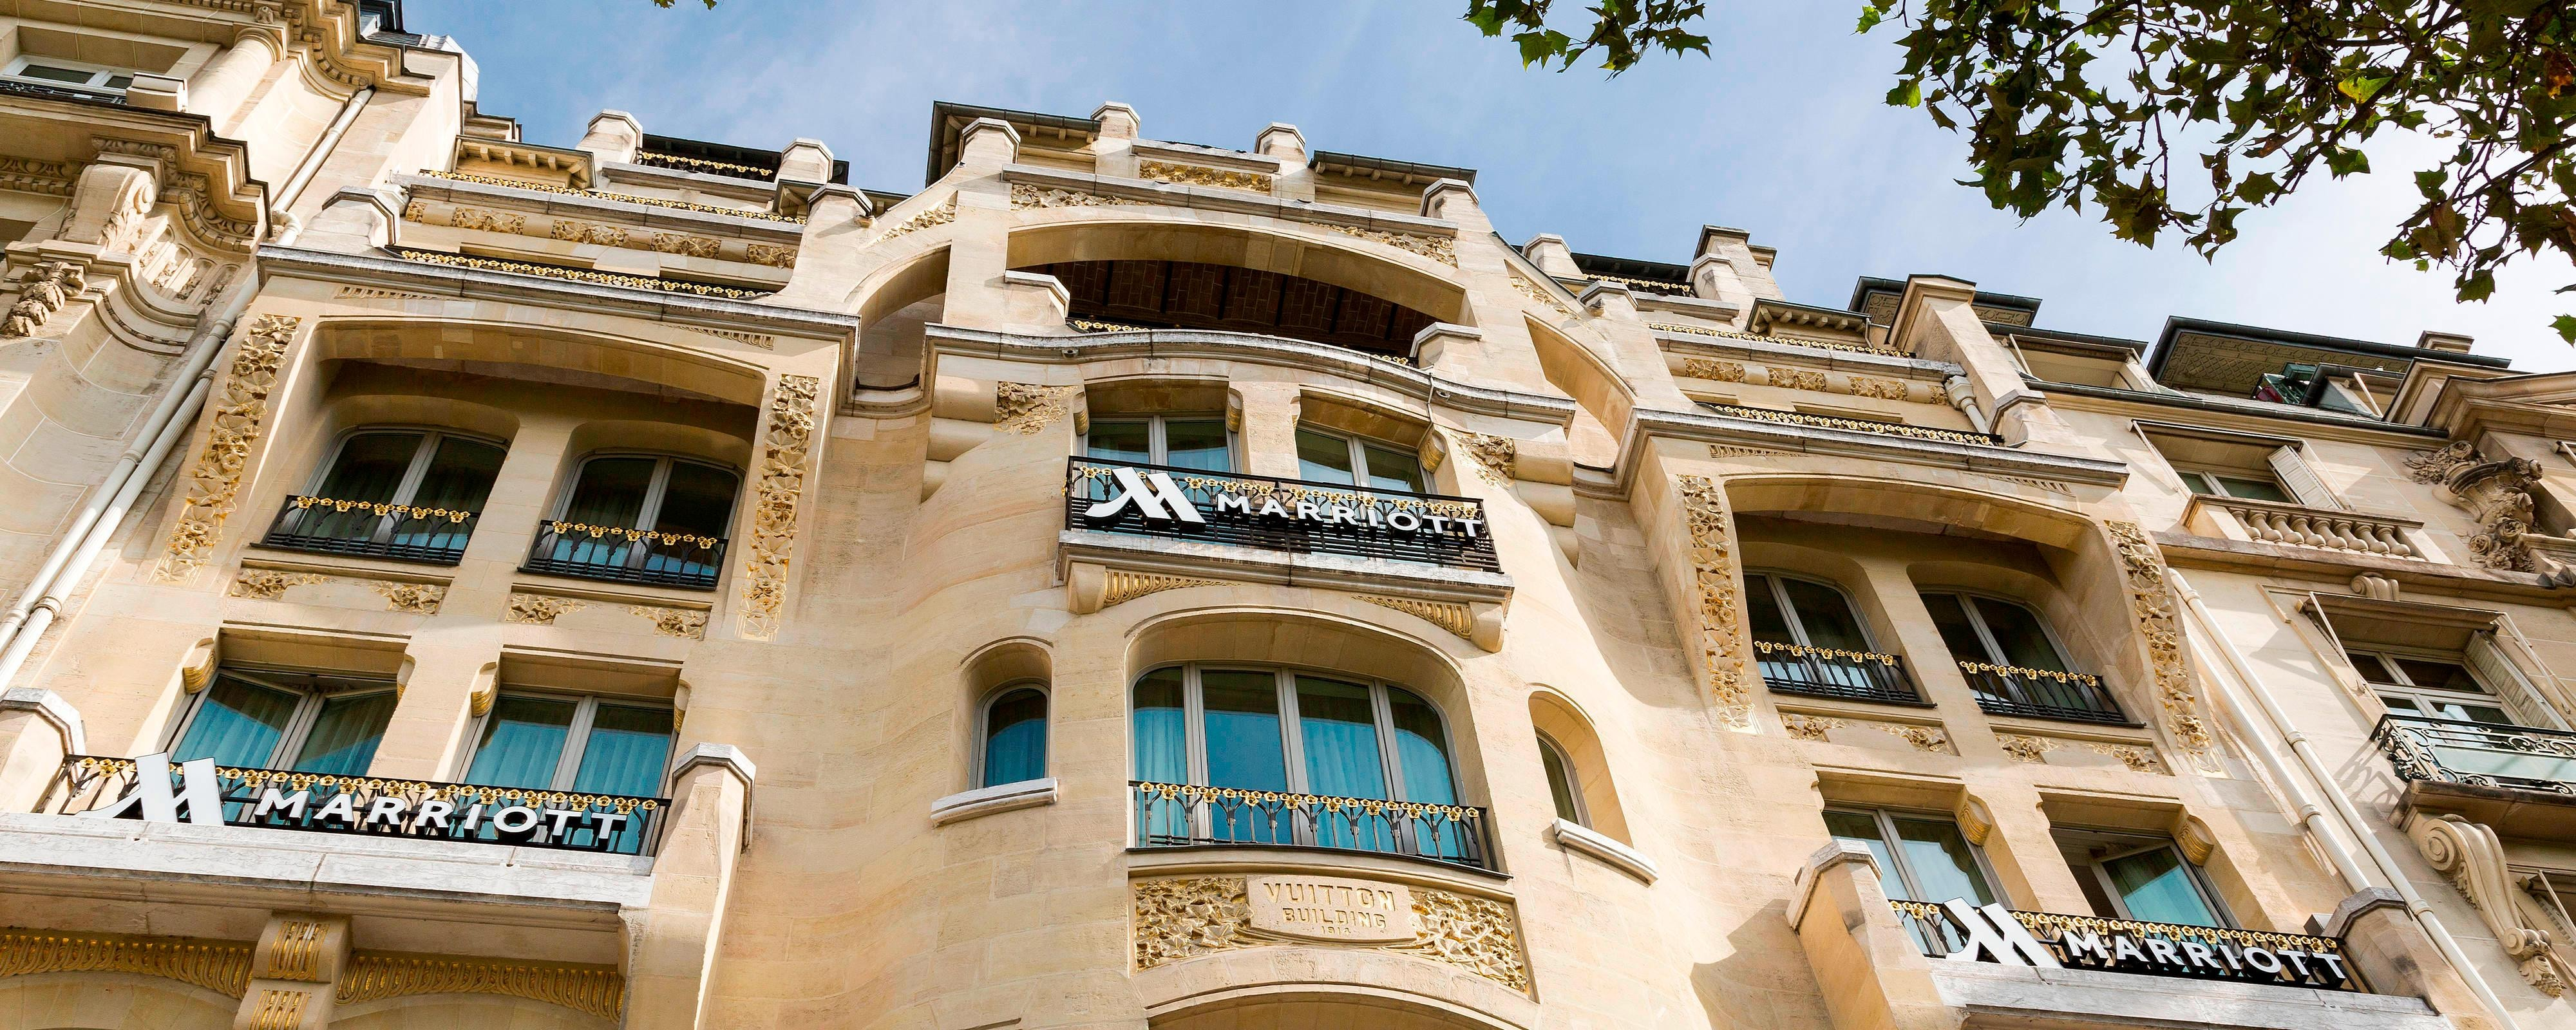 Location Parking Paris 16 Hotel In Paris France Paris Marriott Champs Elysees Hotel